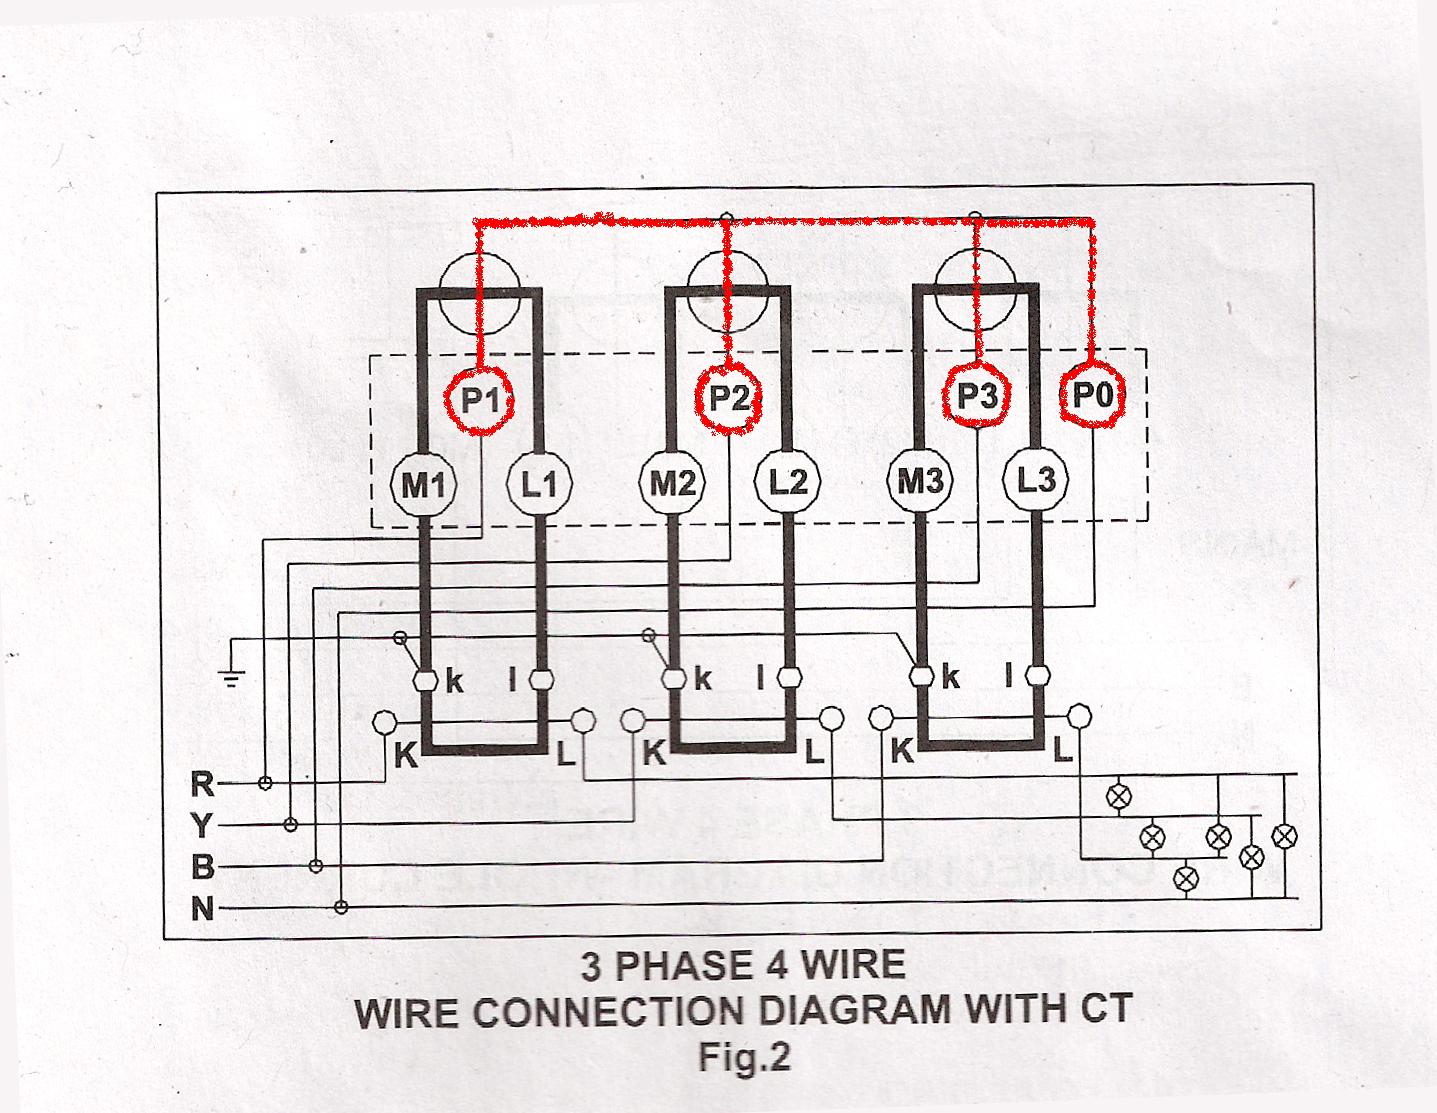 3 phase 4 wire kwh meter wiring diagram